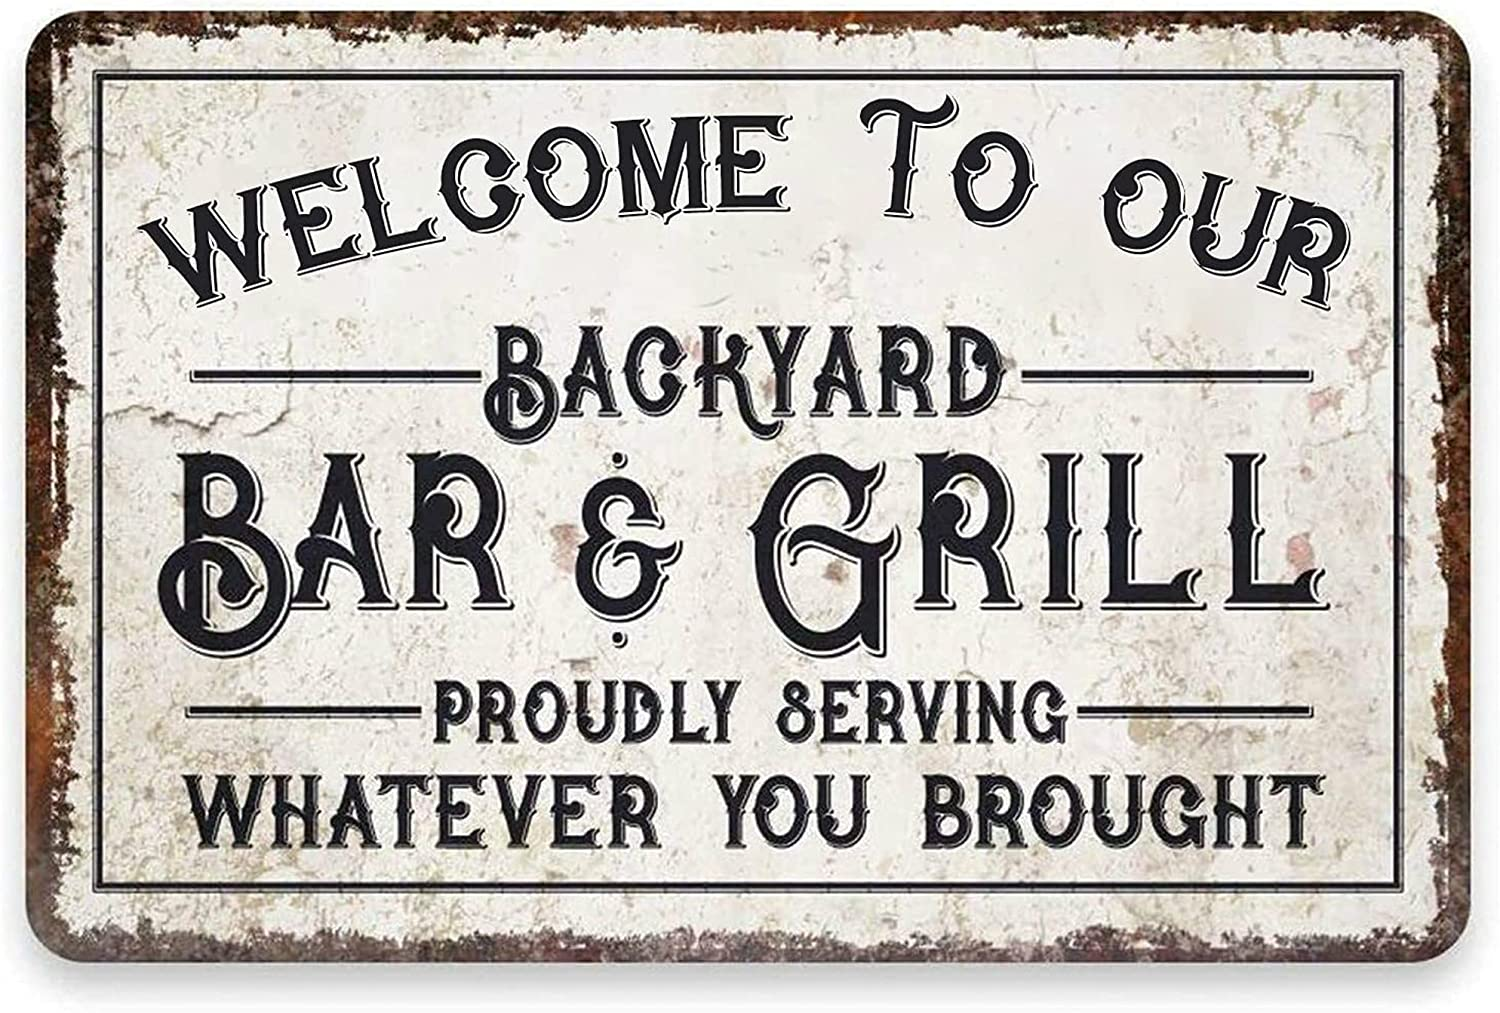 Backyard Bar & Grill Signs Personalized Decor Wall Sign for Barbeque Restaurant Patio